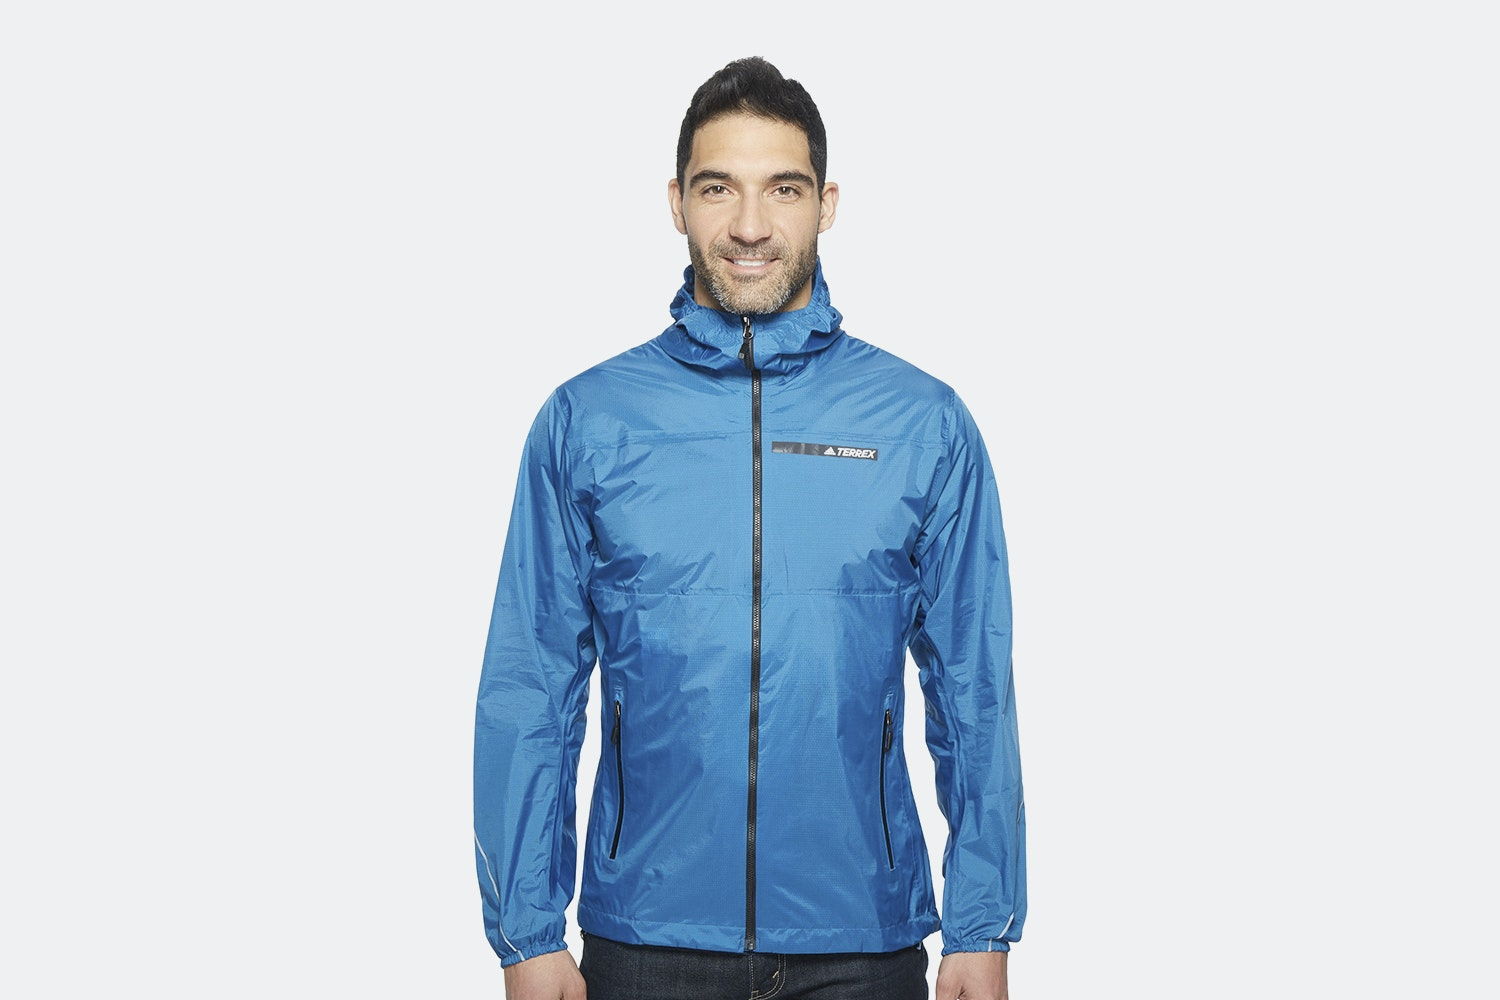 Men's – core blue